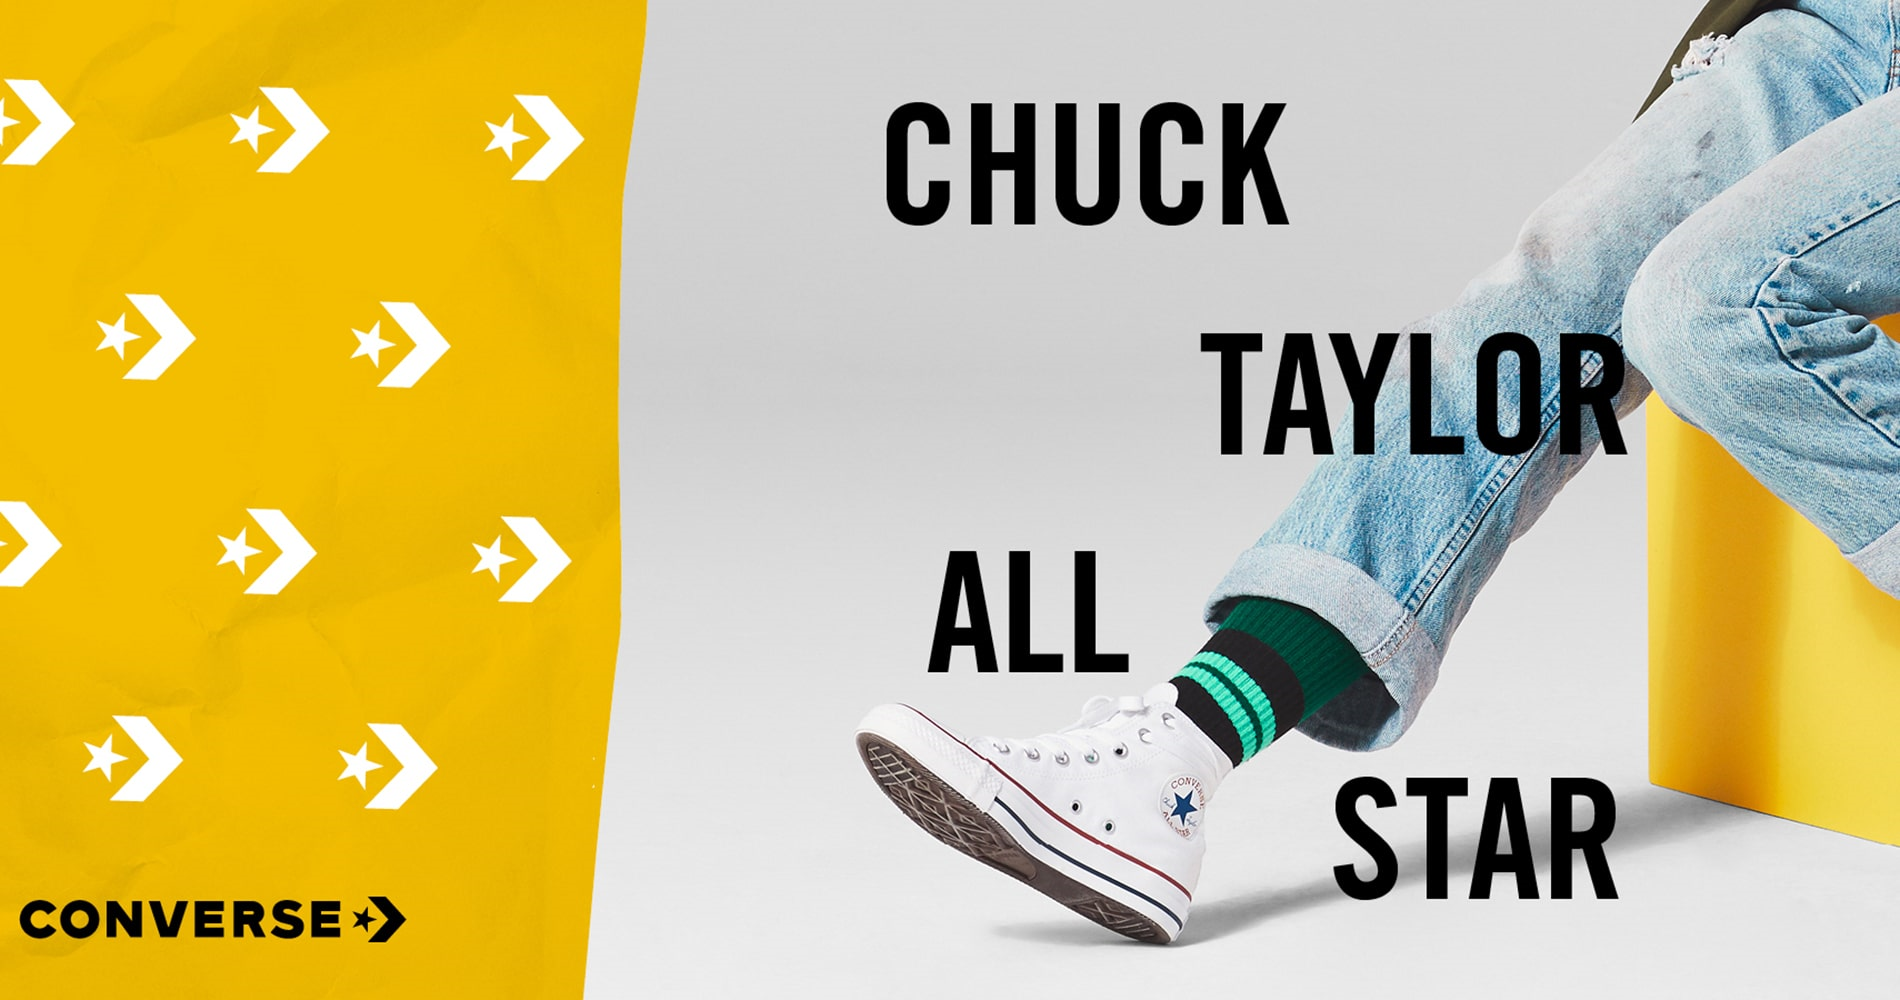 https://www.shoestation.com/catalogsearch/result/?q=converse